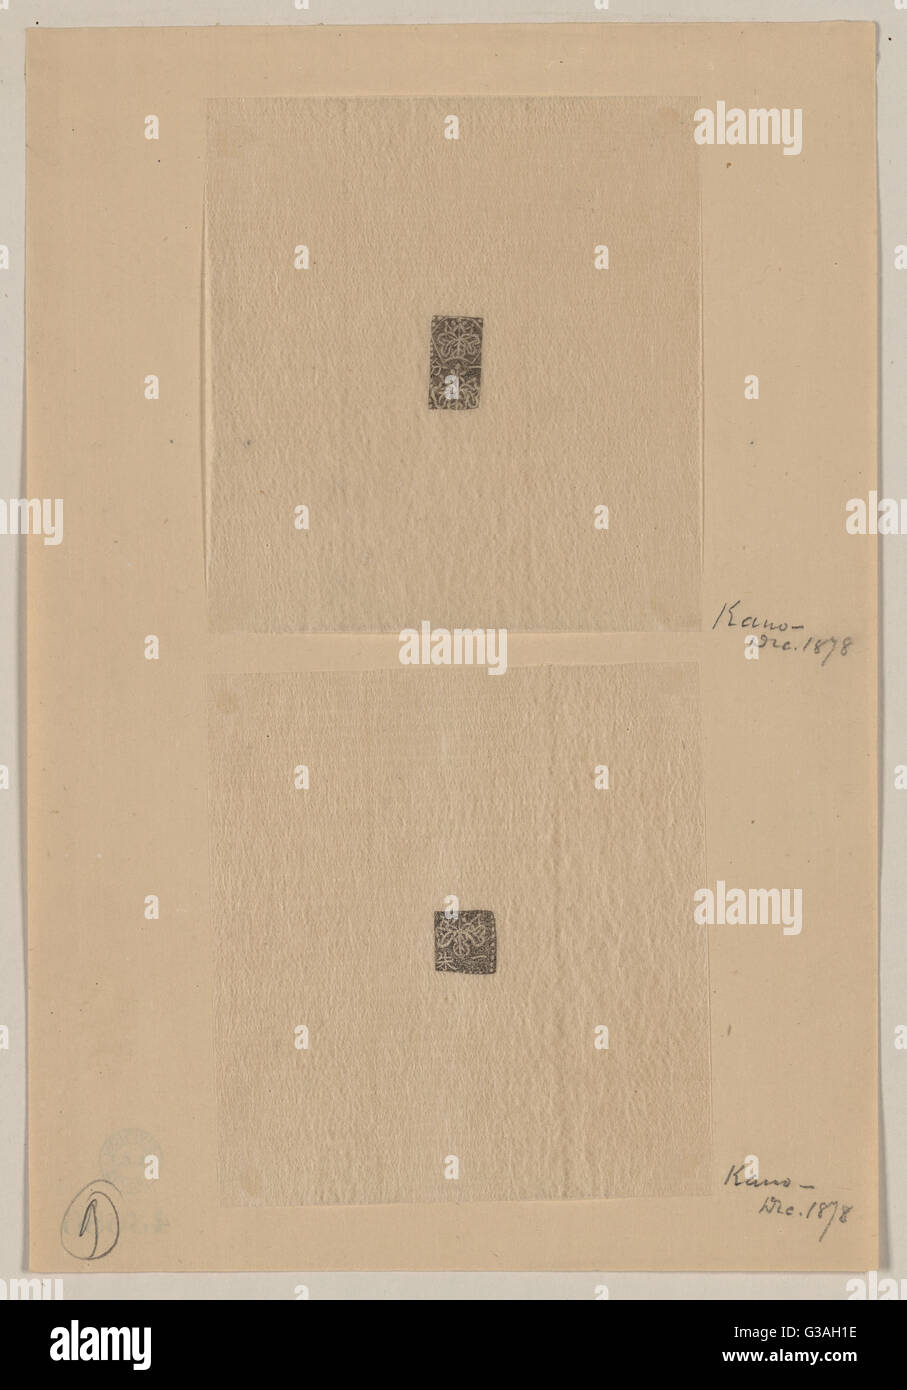 Design drawings for rectangular seals or stamps. Date 1878 Dec. - Stock Image